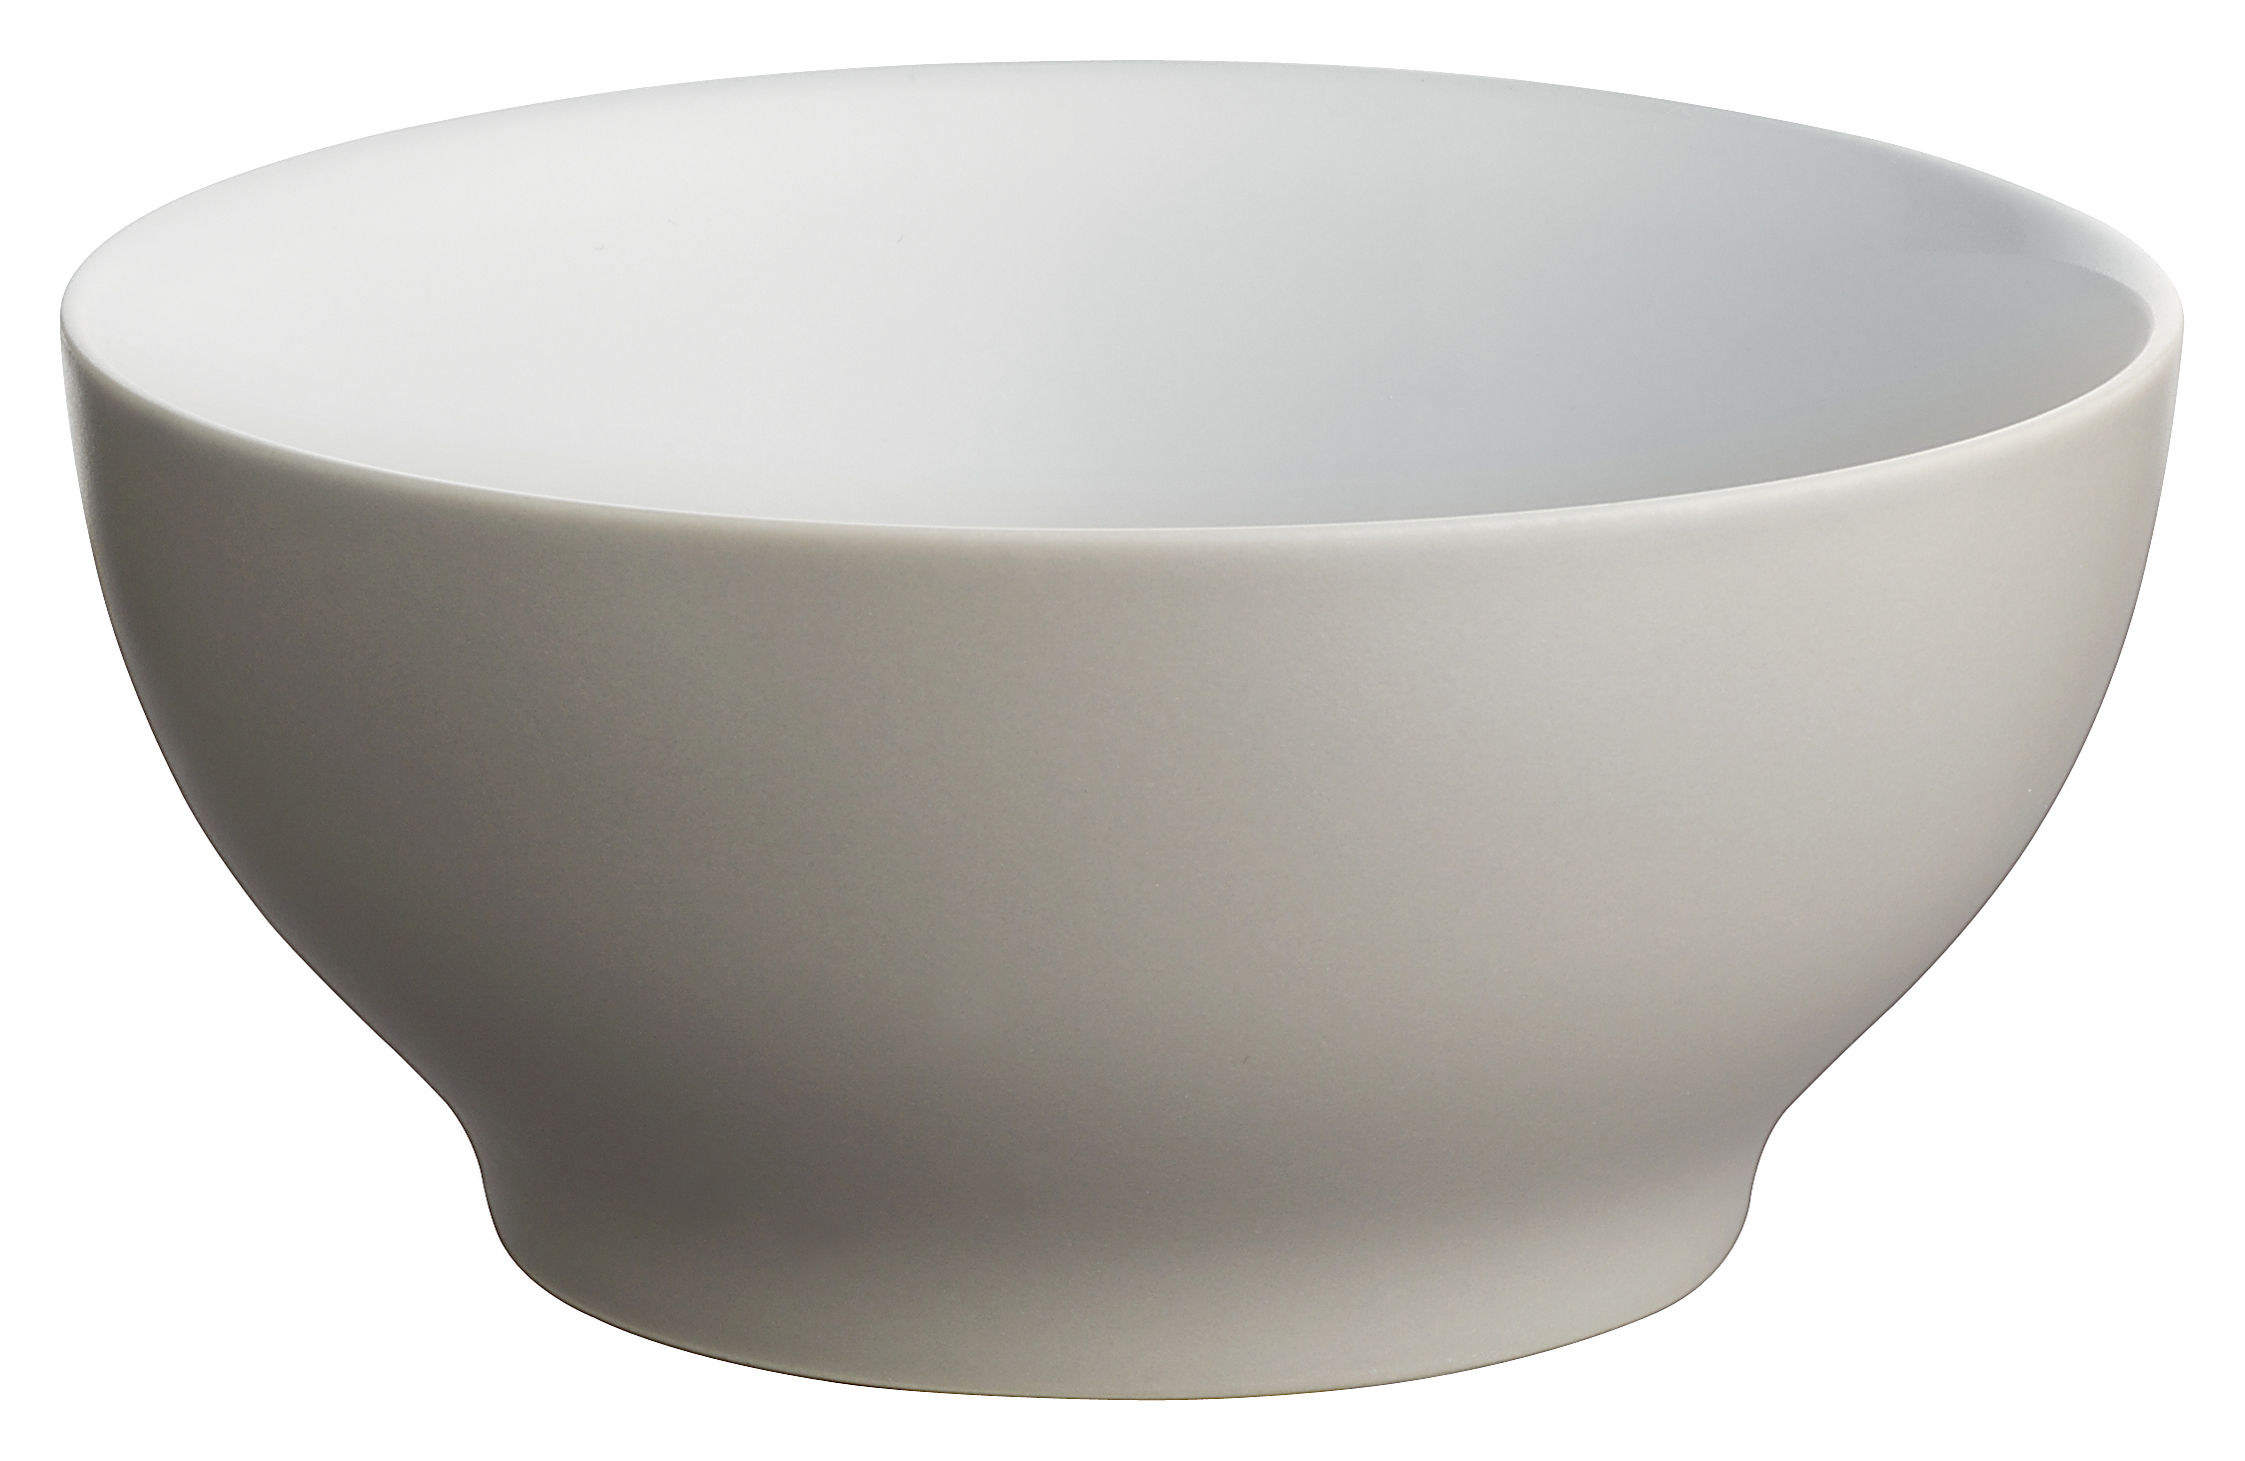 Tableware - Bowls - Tonale Bowl - Small bowl by Alessi - Light grey - Stoneware ceramic